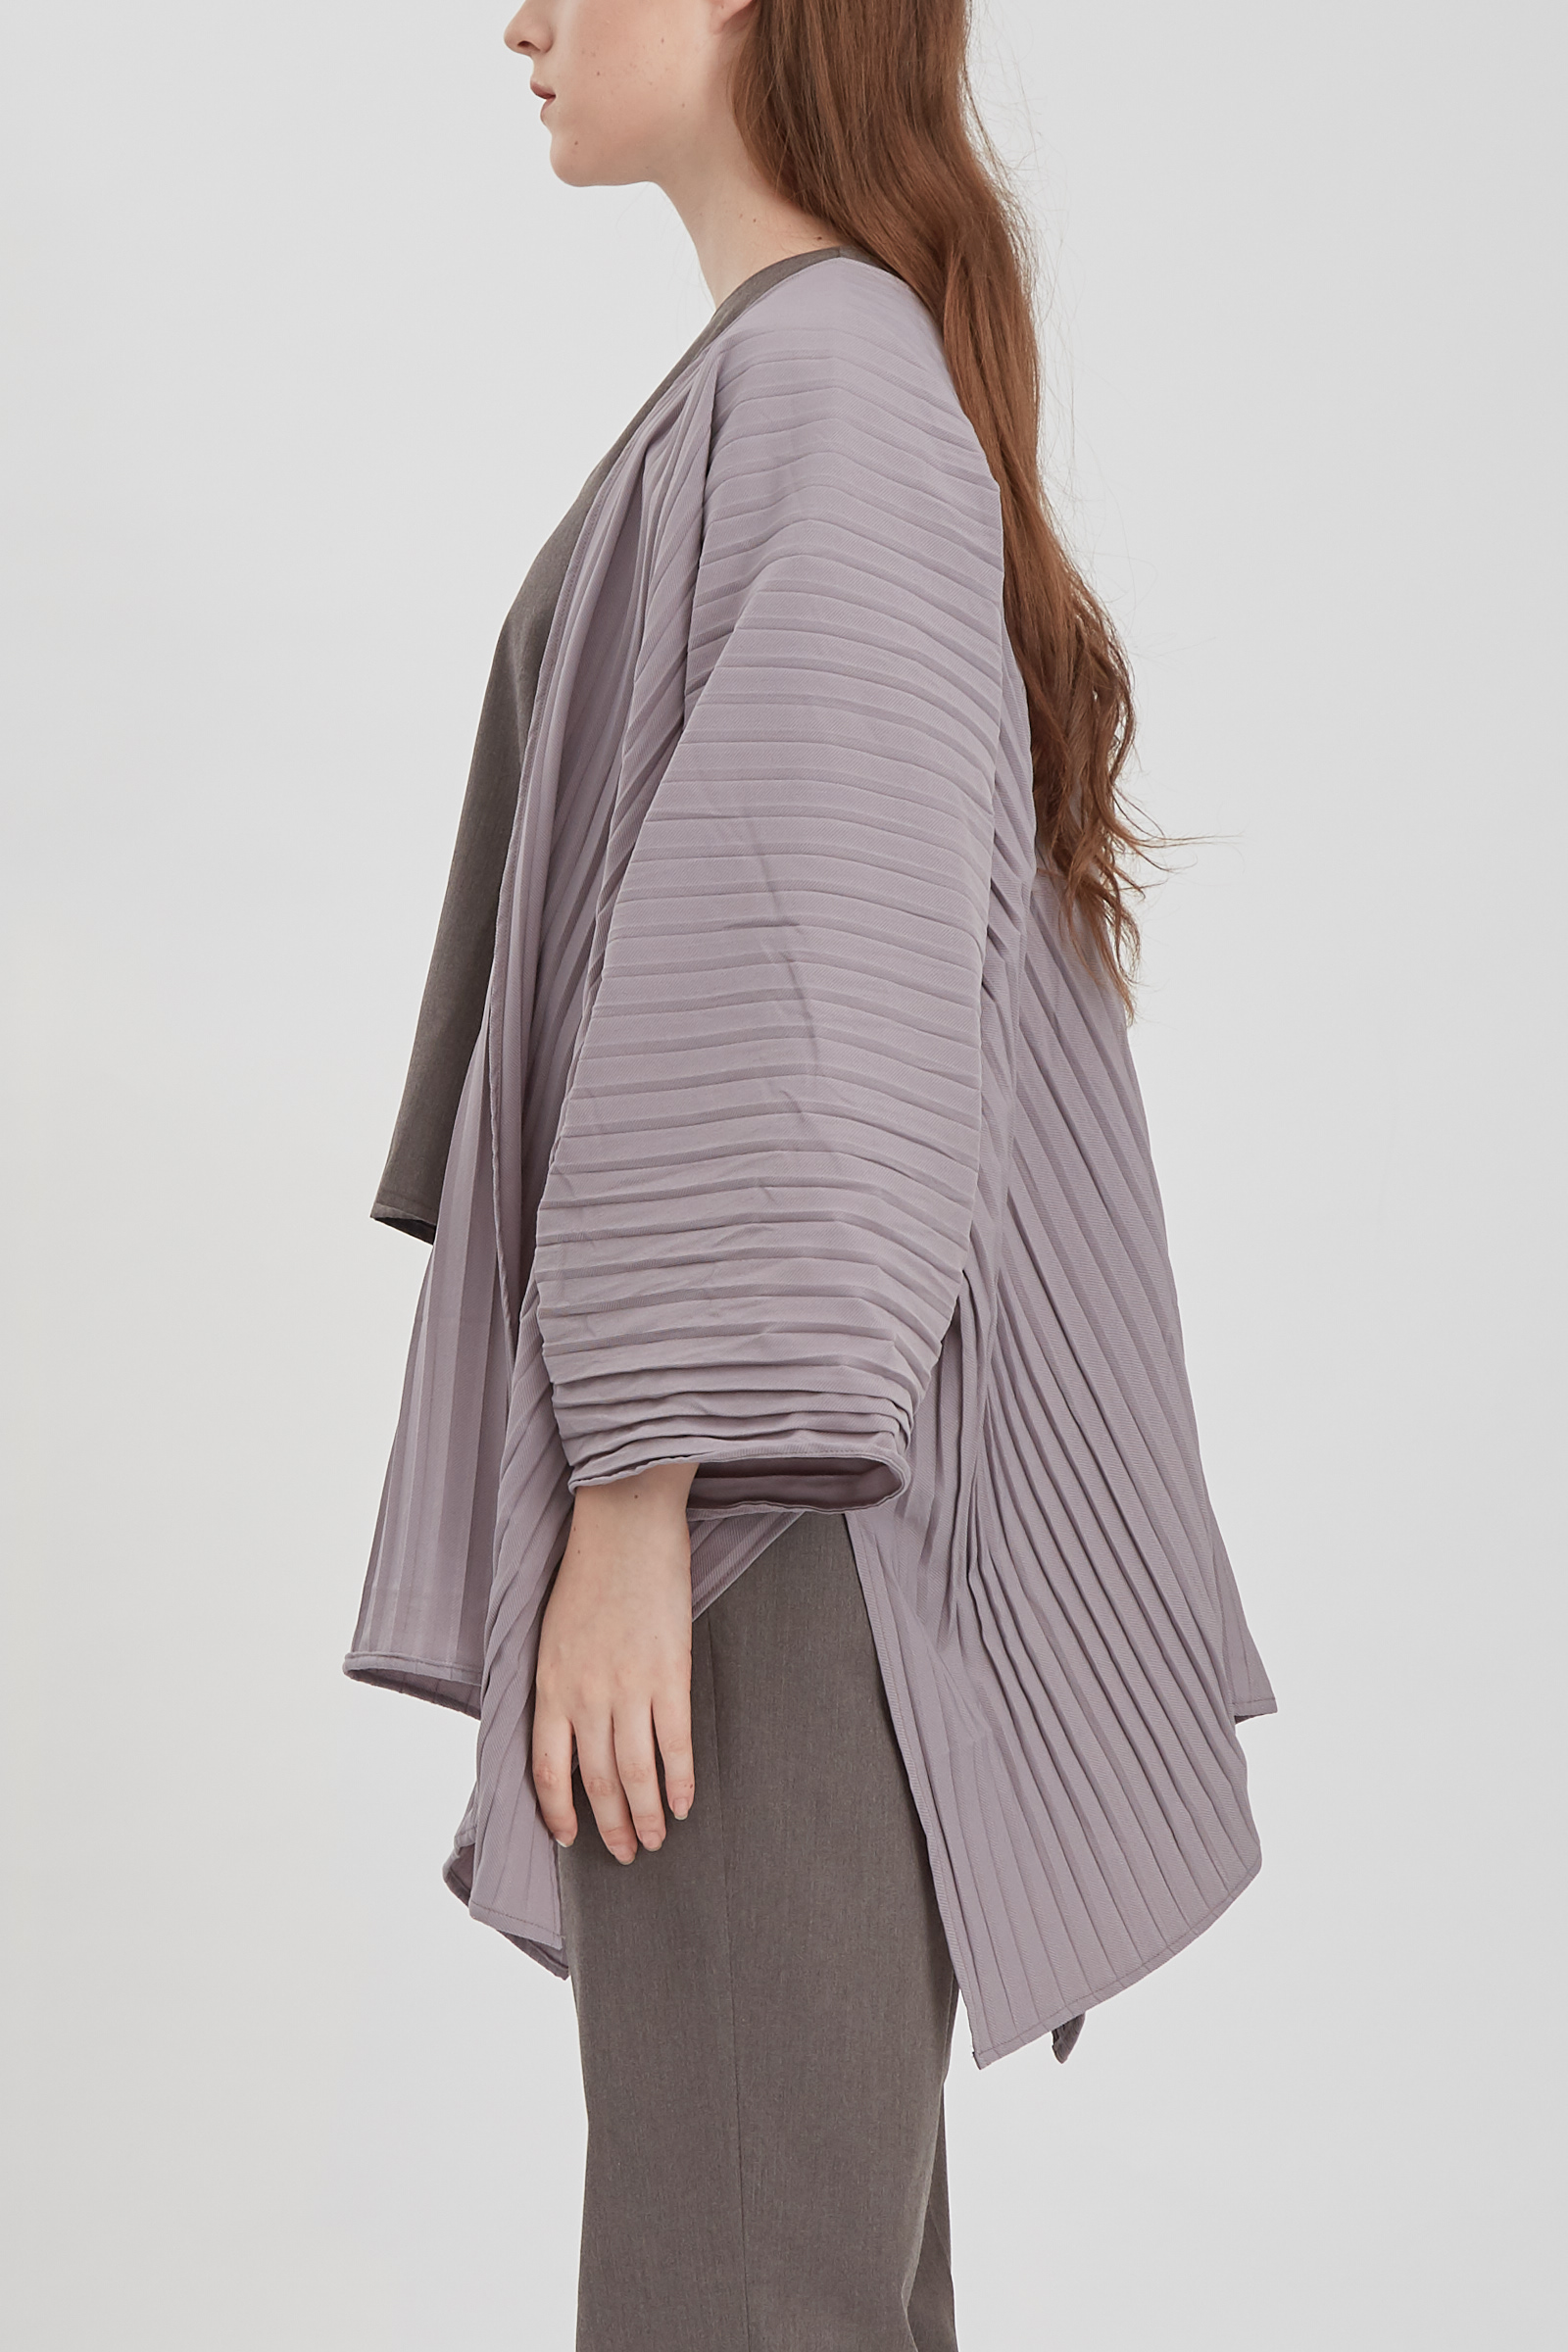 Shopatvelvet Ava Pleated Cardigan